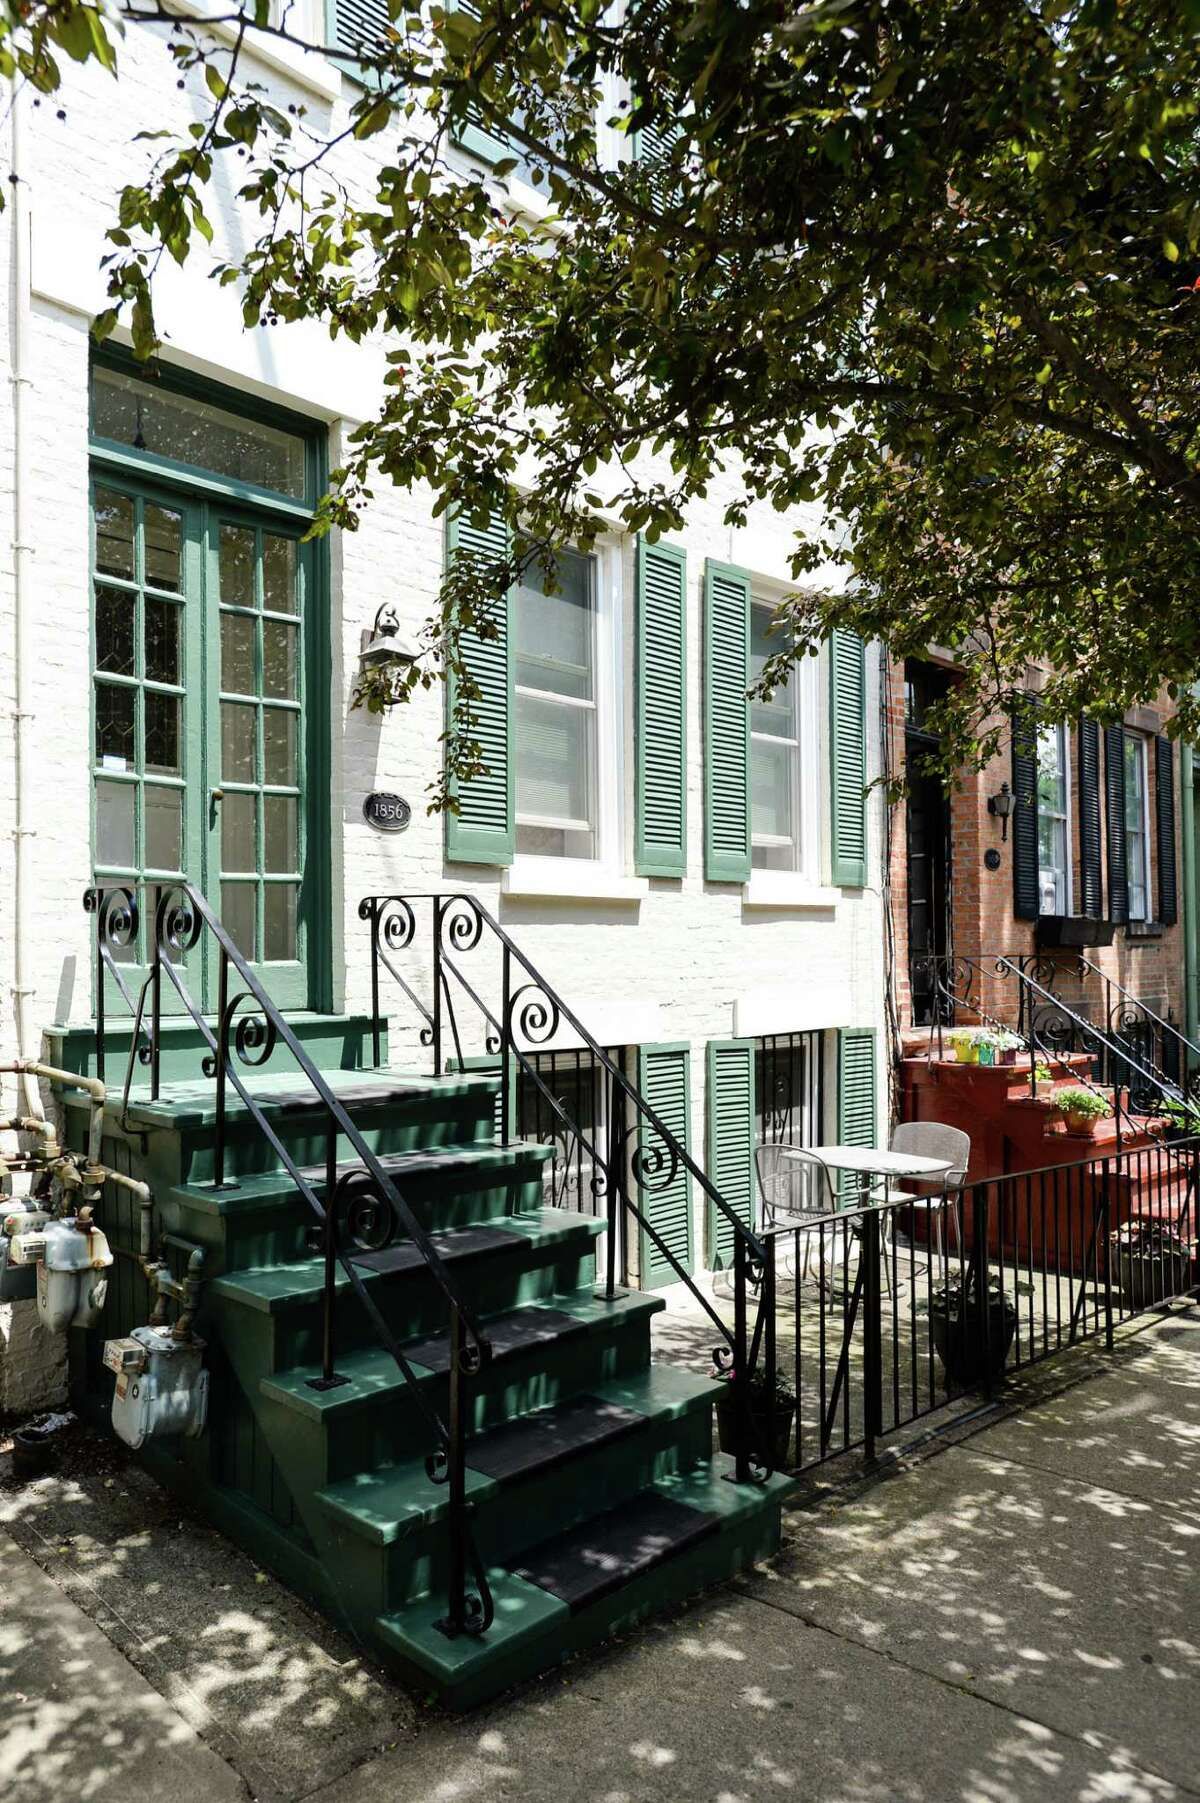 House of the Week: 227 Jay St., Albany | Realtor: Alexander Monticello | Discuss: Talk about this house